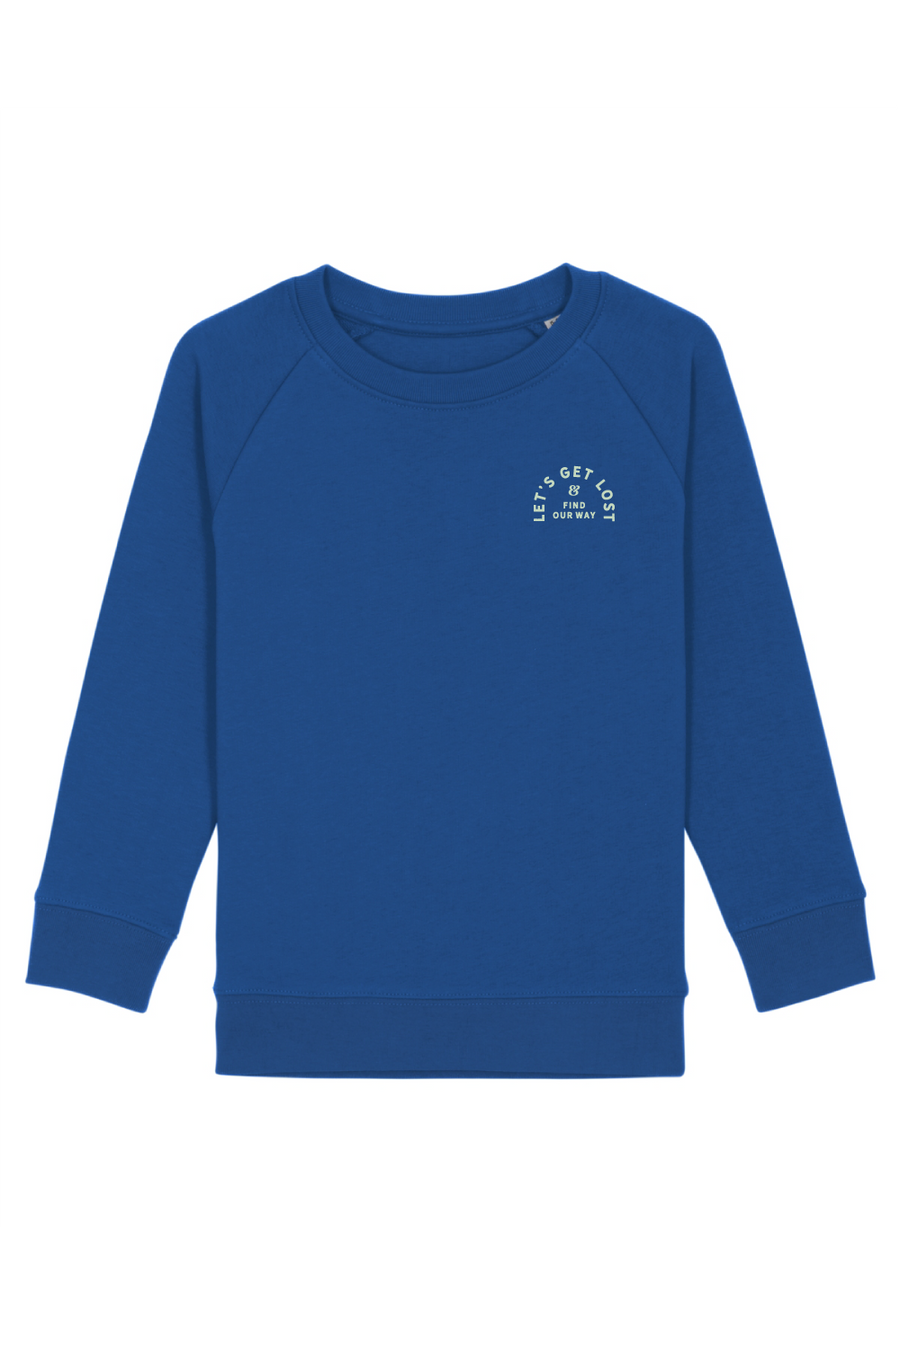 Let's get lost kids sweater - Joh Clothing